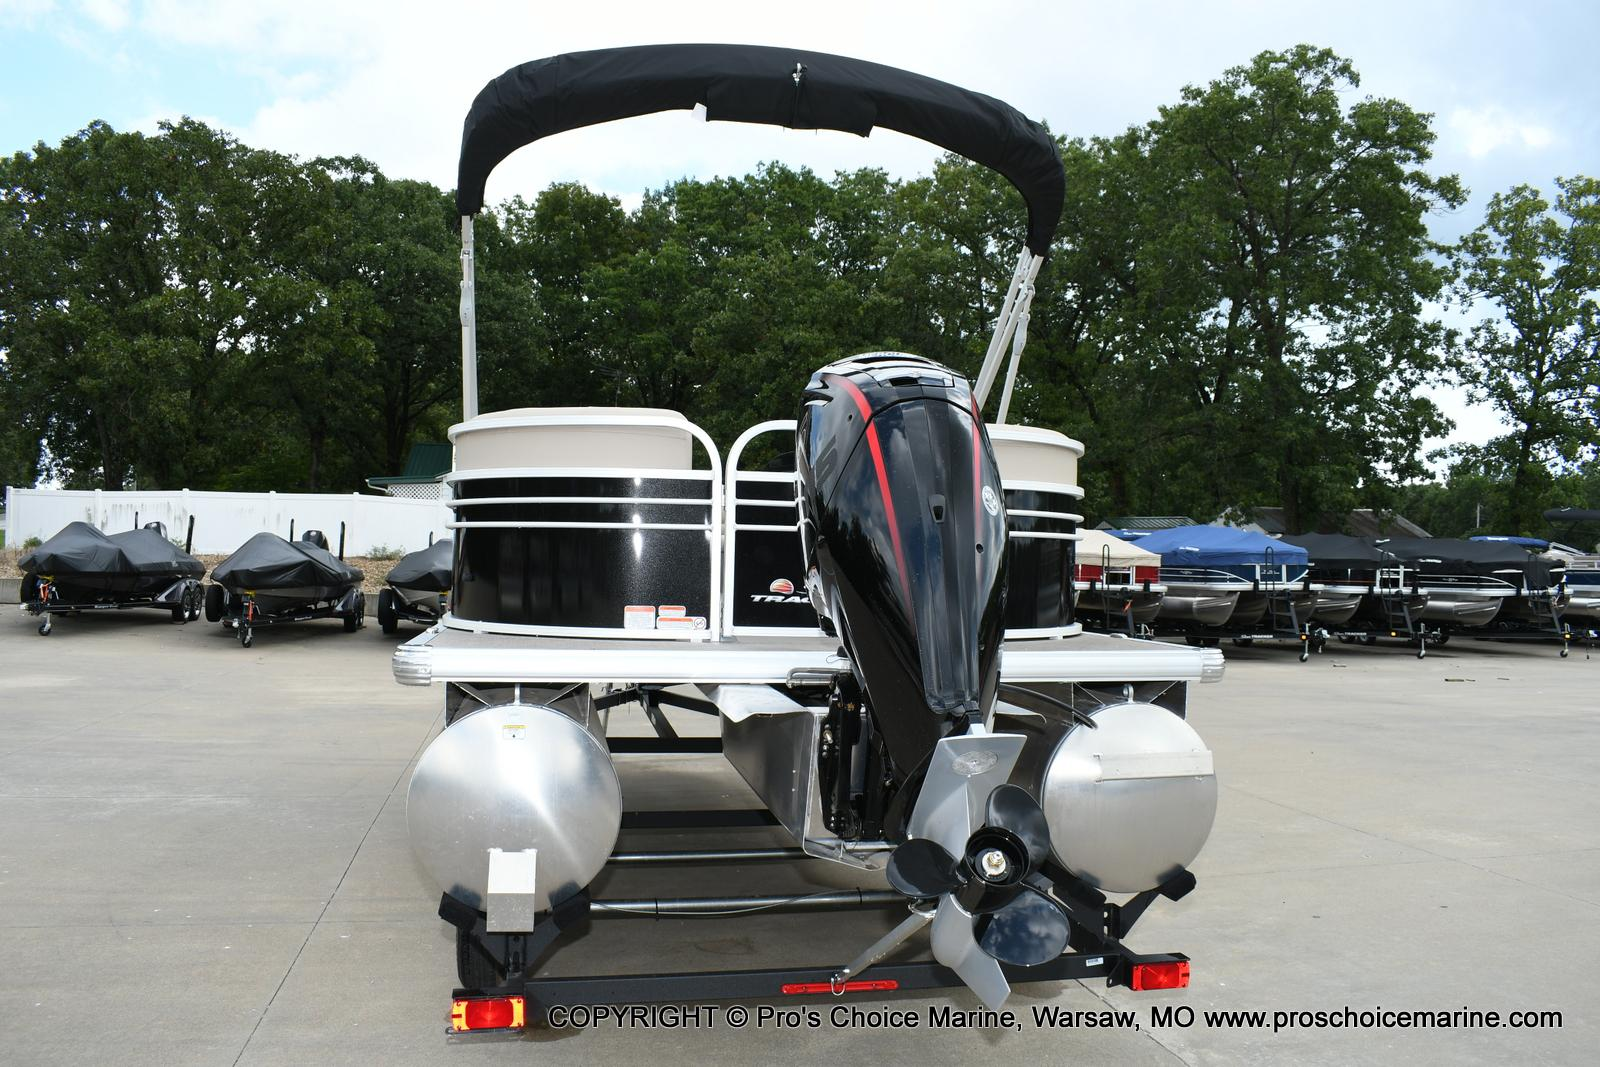 2020 Sun Tracker boat for sale, model of the boat is Party Barge 22 DLX & Image # 33 of 50